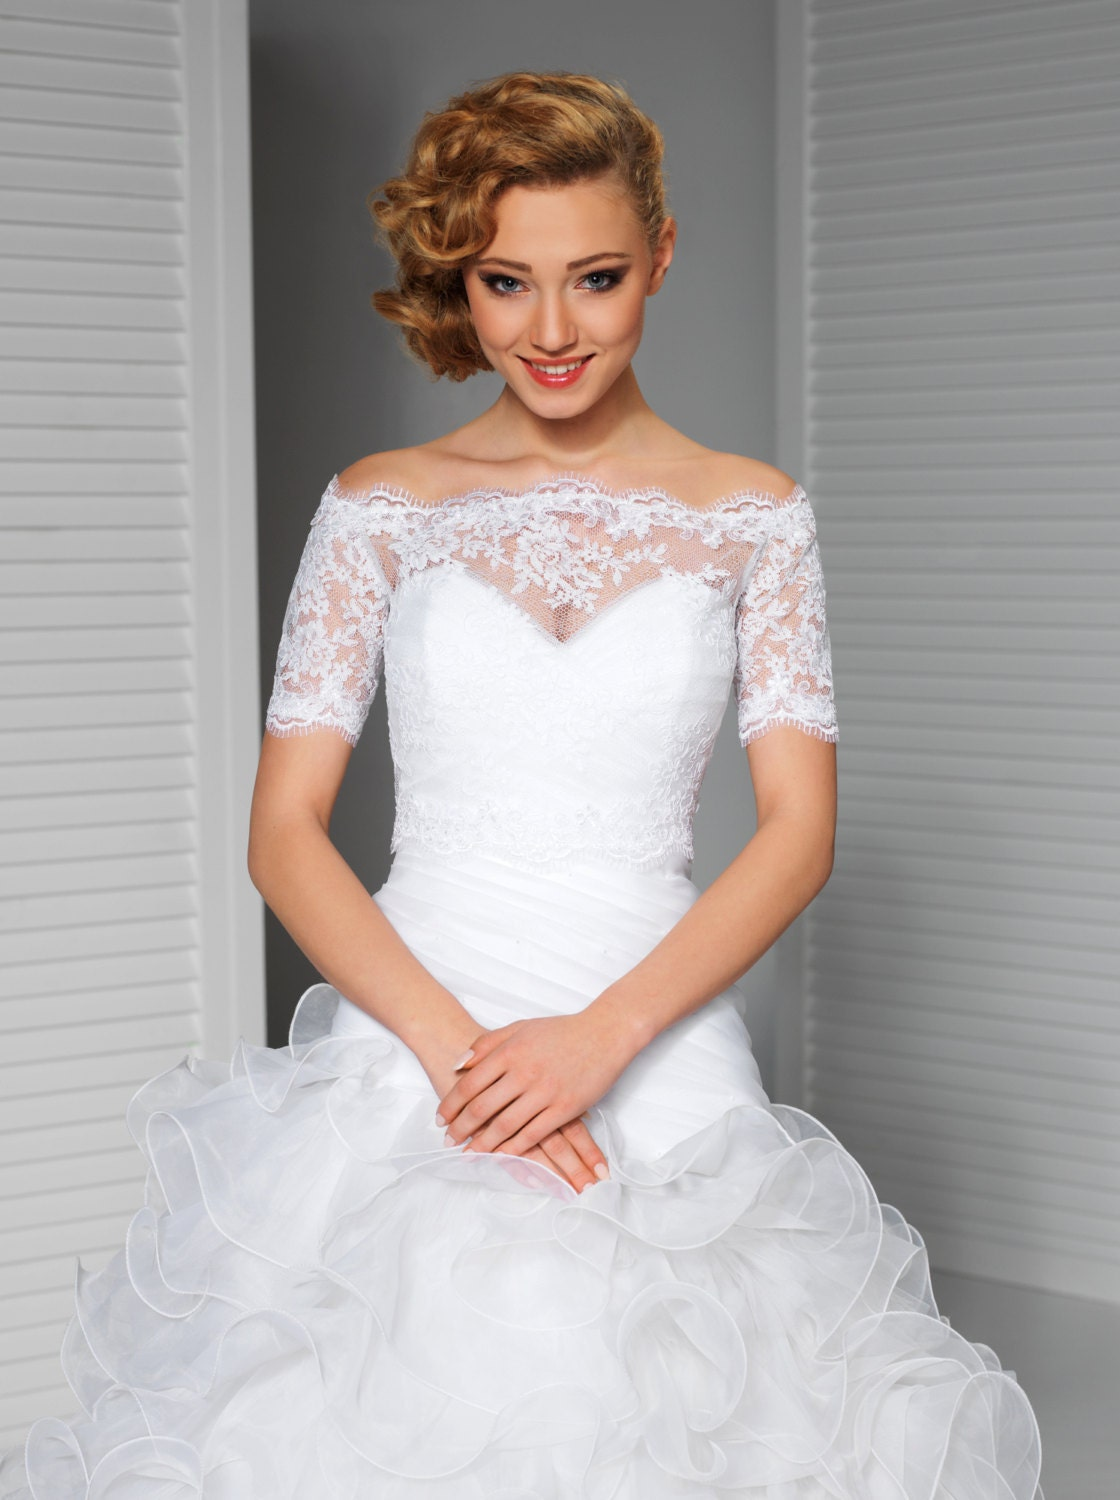 Lace bridal topper in ivory or white for Off the shoulder wedding dress topper